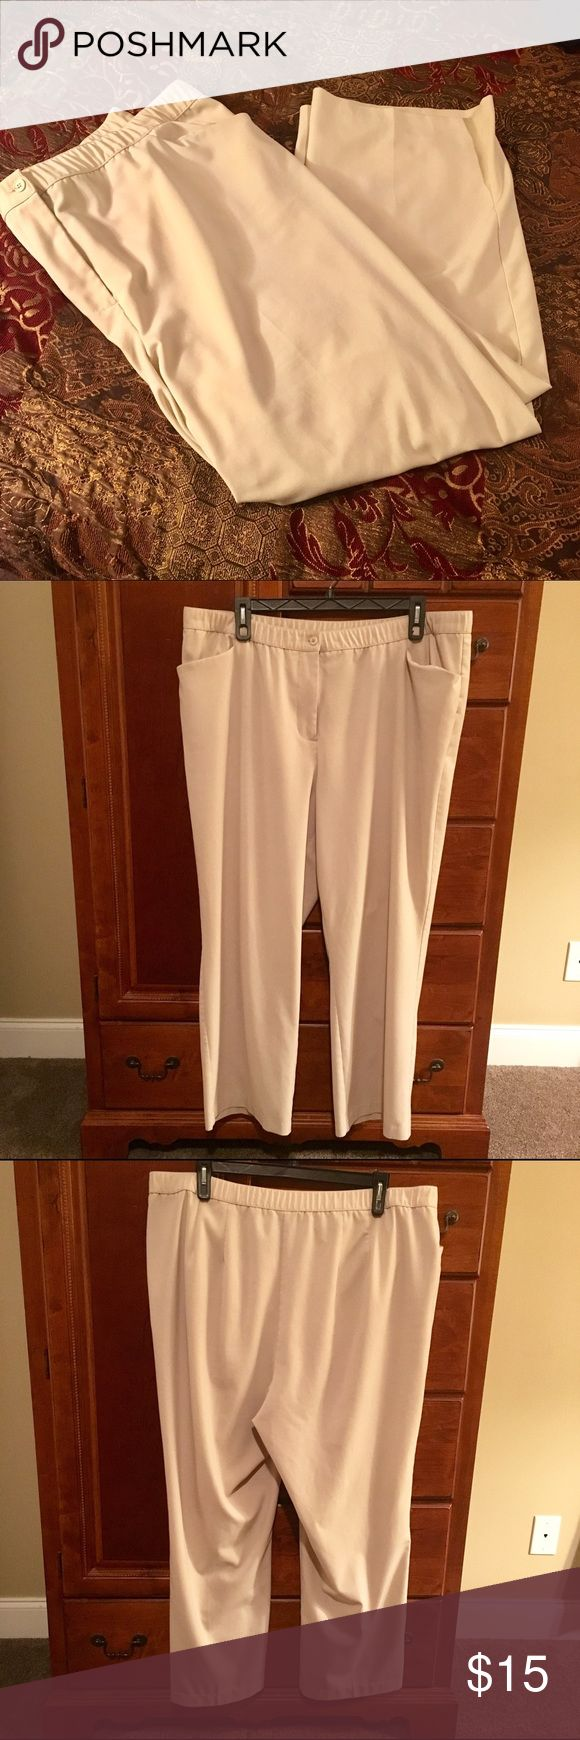 "Liz & Me Cream Plus Size  Dress Pants 24W Comfortable & Chic Cream Dress Pants from Catherines, size 24W, refined. Extremely soft &  comfy, they also are stretchy with a stretch panel on back.   63% Polyester - 33% Rayon - 4% Spandex  Waist can be from 42"" - 47"" stretched comfortably Length 43"" Inseam 30""  Excellent Condition. All items come from a clean smoke/pet free home. thanks ☺️ Liz & Me Pants"